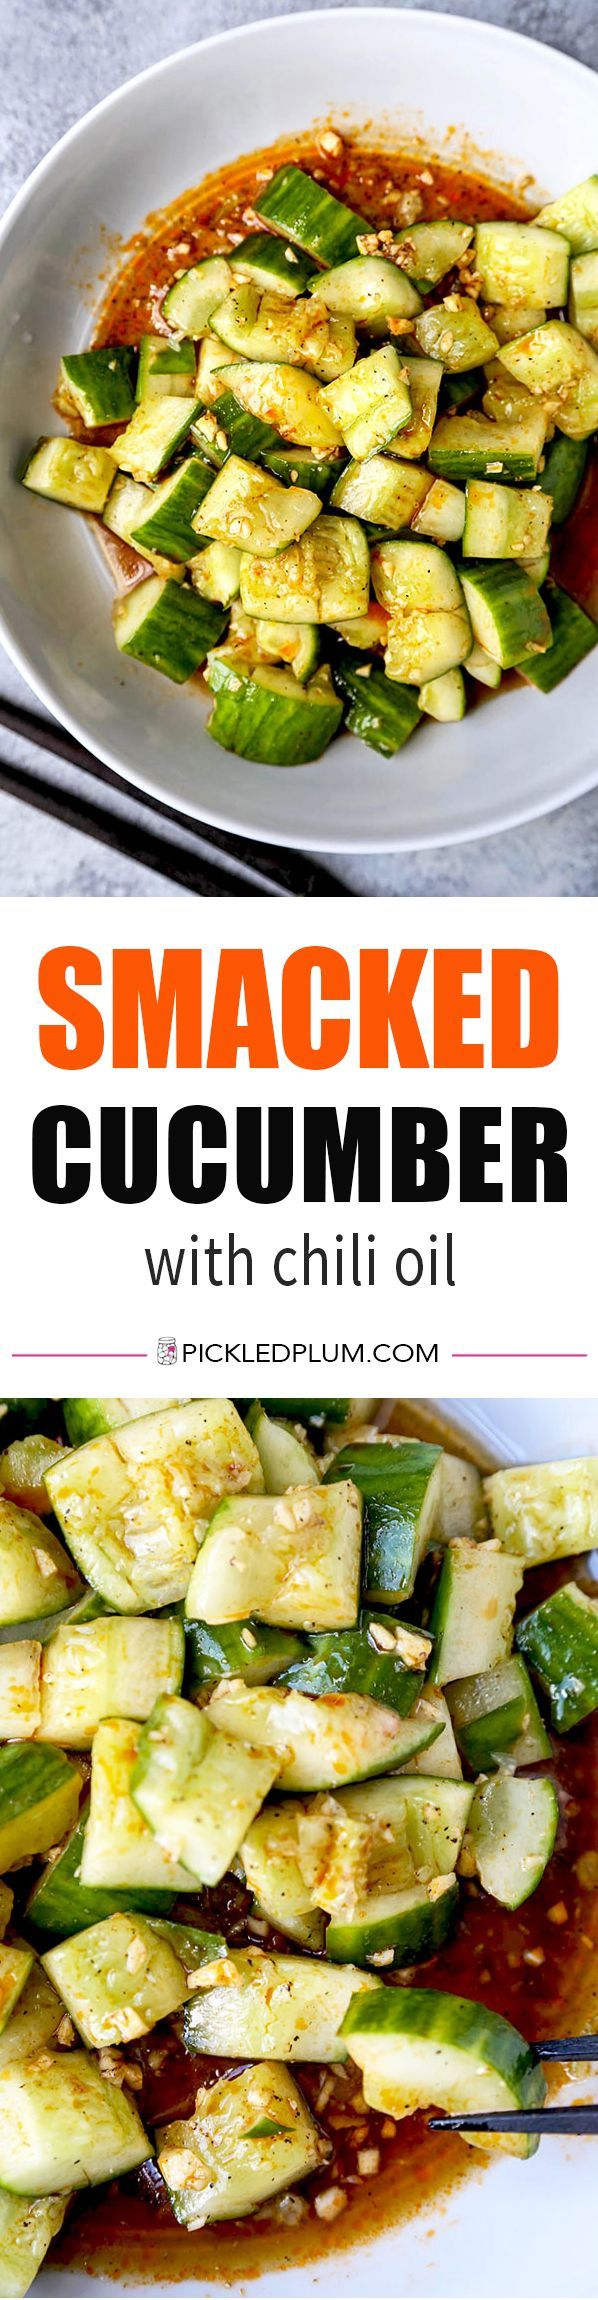 Smacked Cucumber with Chili Oil - Sichuan recipe, Chinese recipe, plant based recipe, vegan recipes, vegetarian, healthy vegetable side dish, appetizer | pickledplum.com